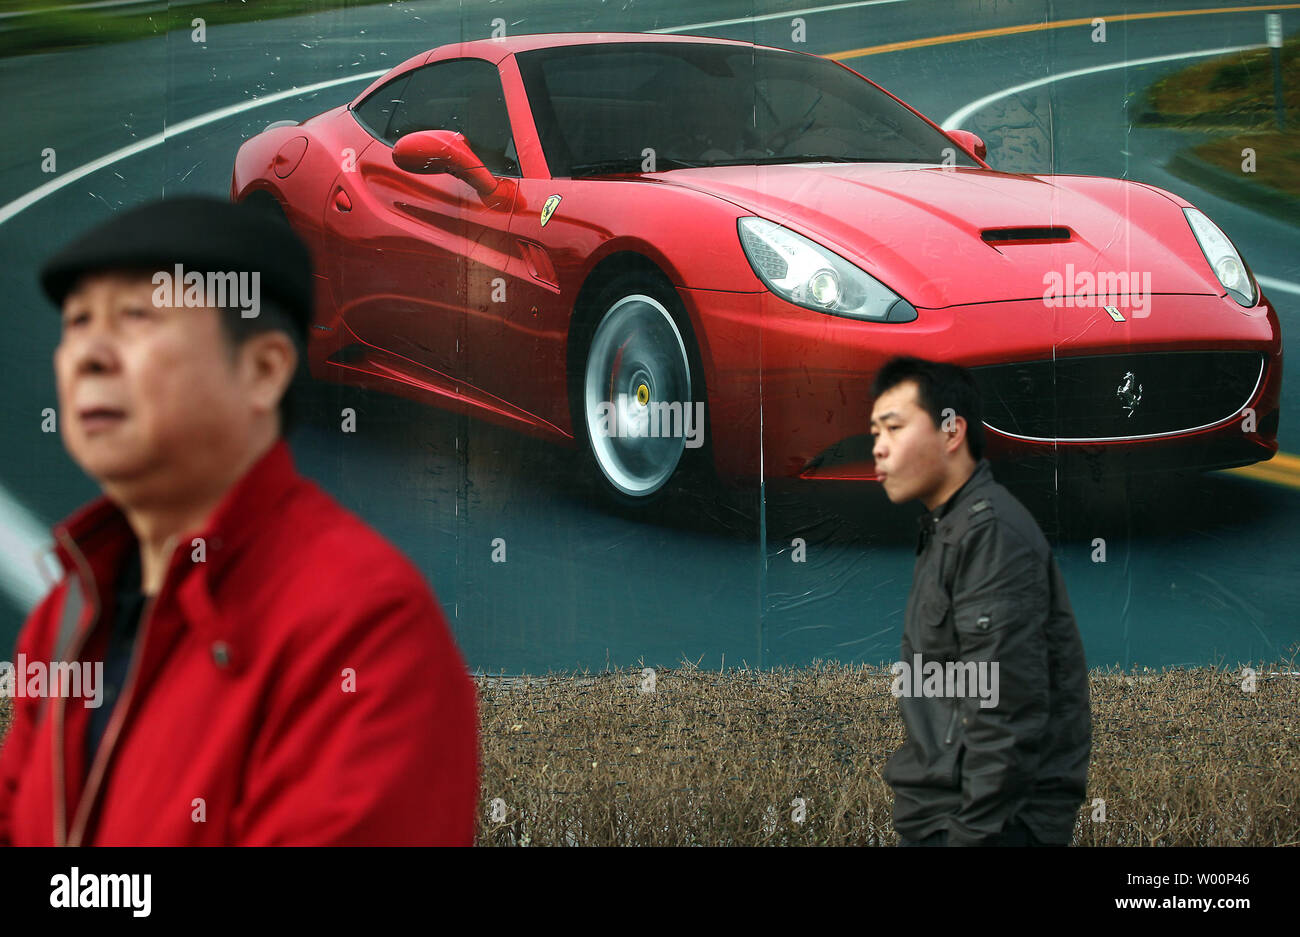 Ferrari Advertisement High Resolution Stock Photography And Images Alamy